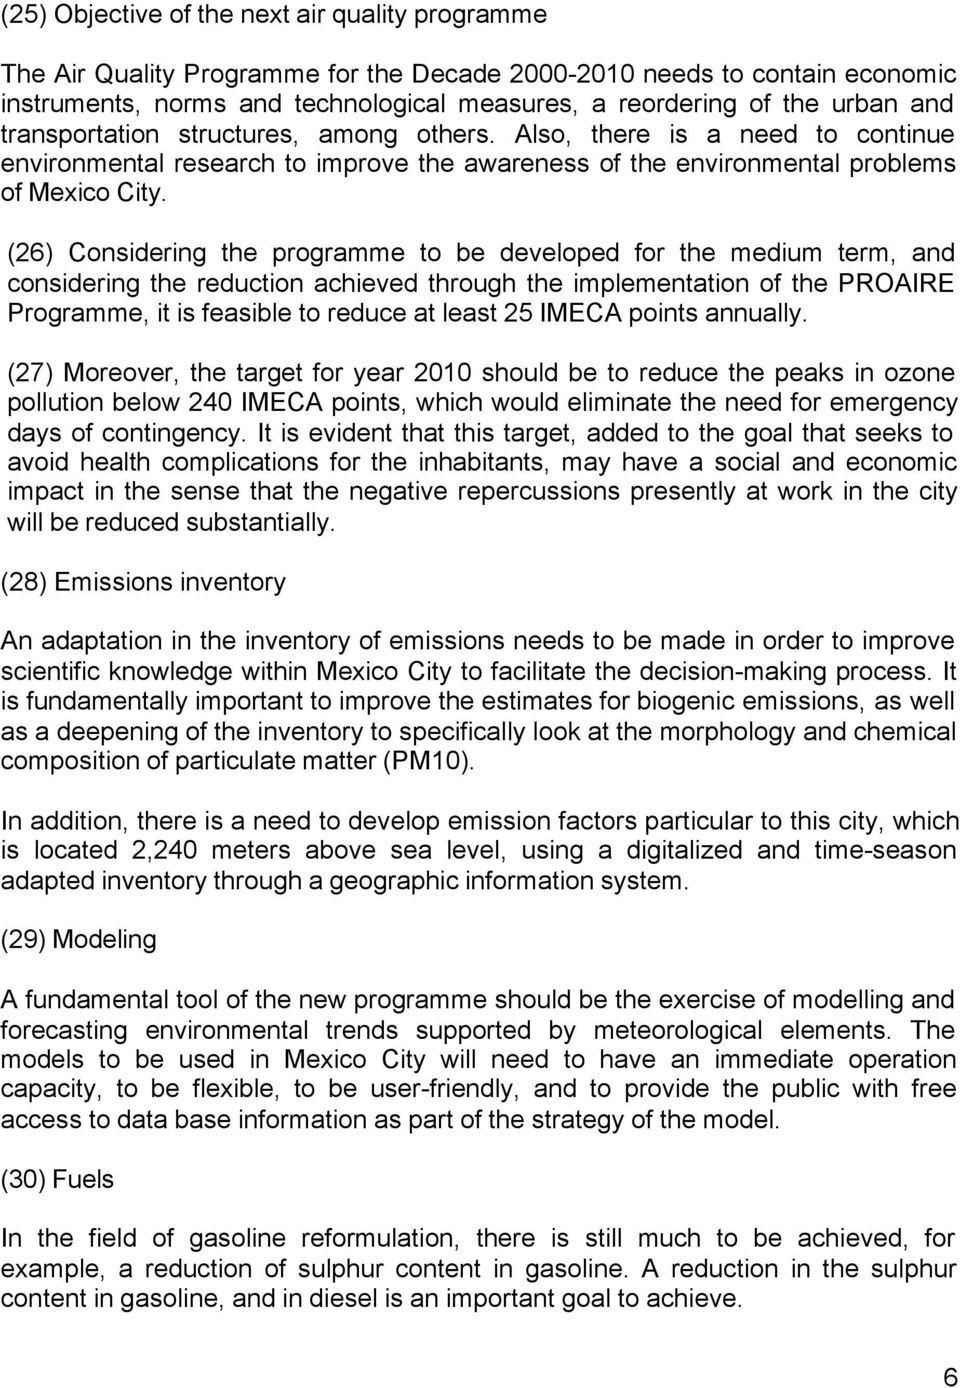 (26) Considering the programme to be developed for the medium term, and considering the reduction achieved through the implementation of the PROAIRE Programme, it is feasible to reduce at least 25